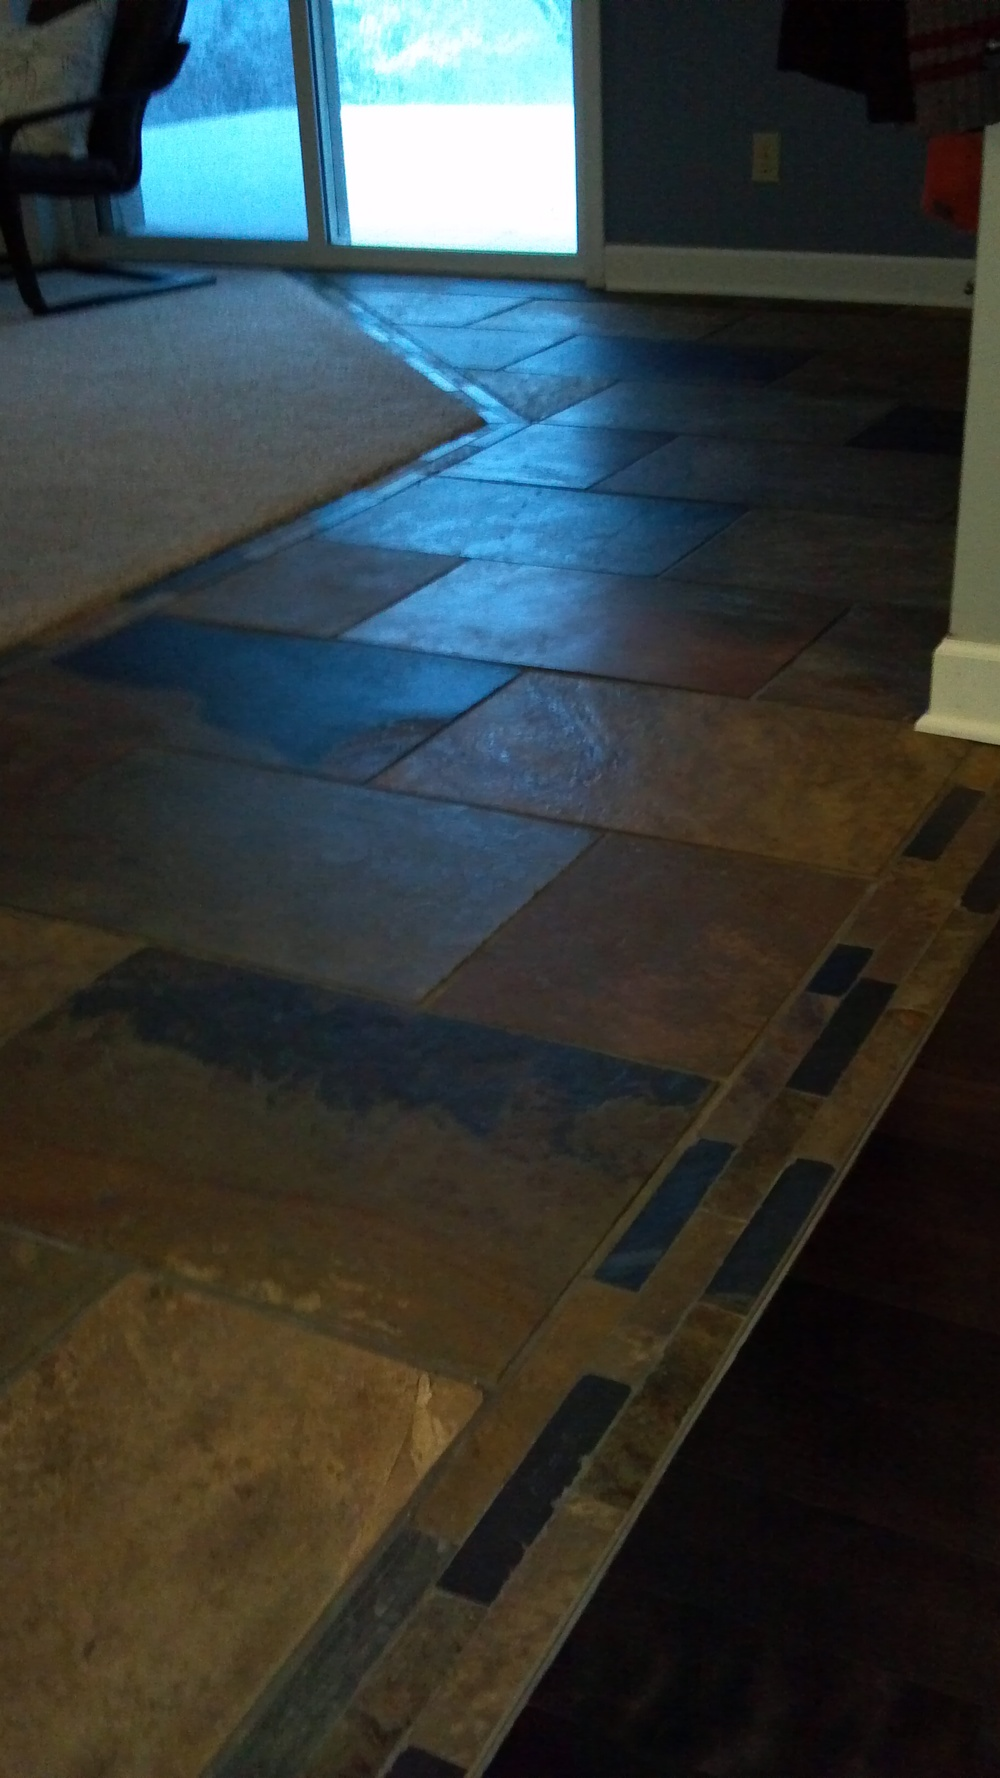 MDC 17 Slate Floor carpet int angle long view.jpg